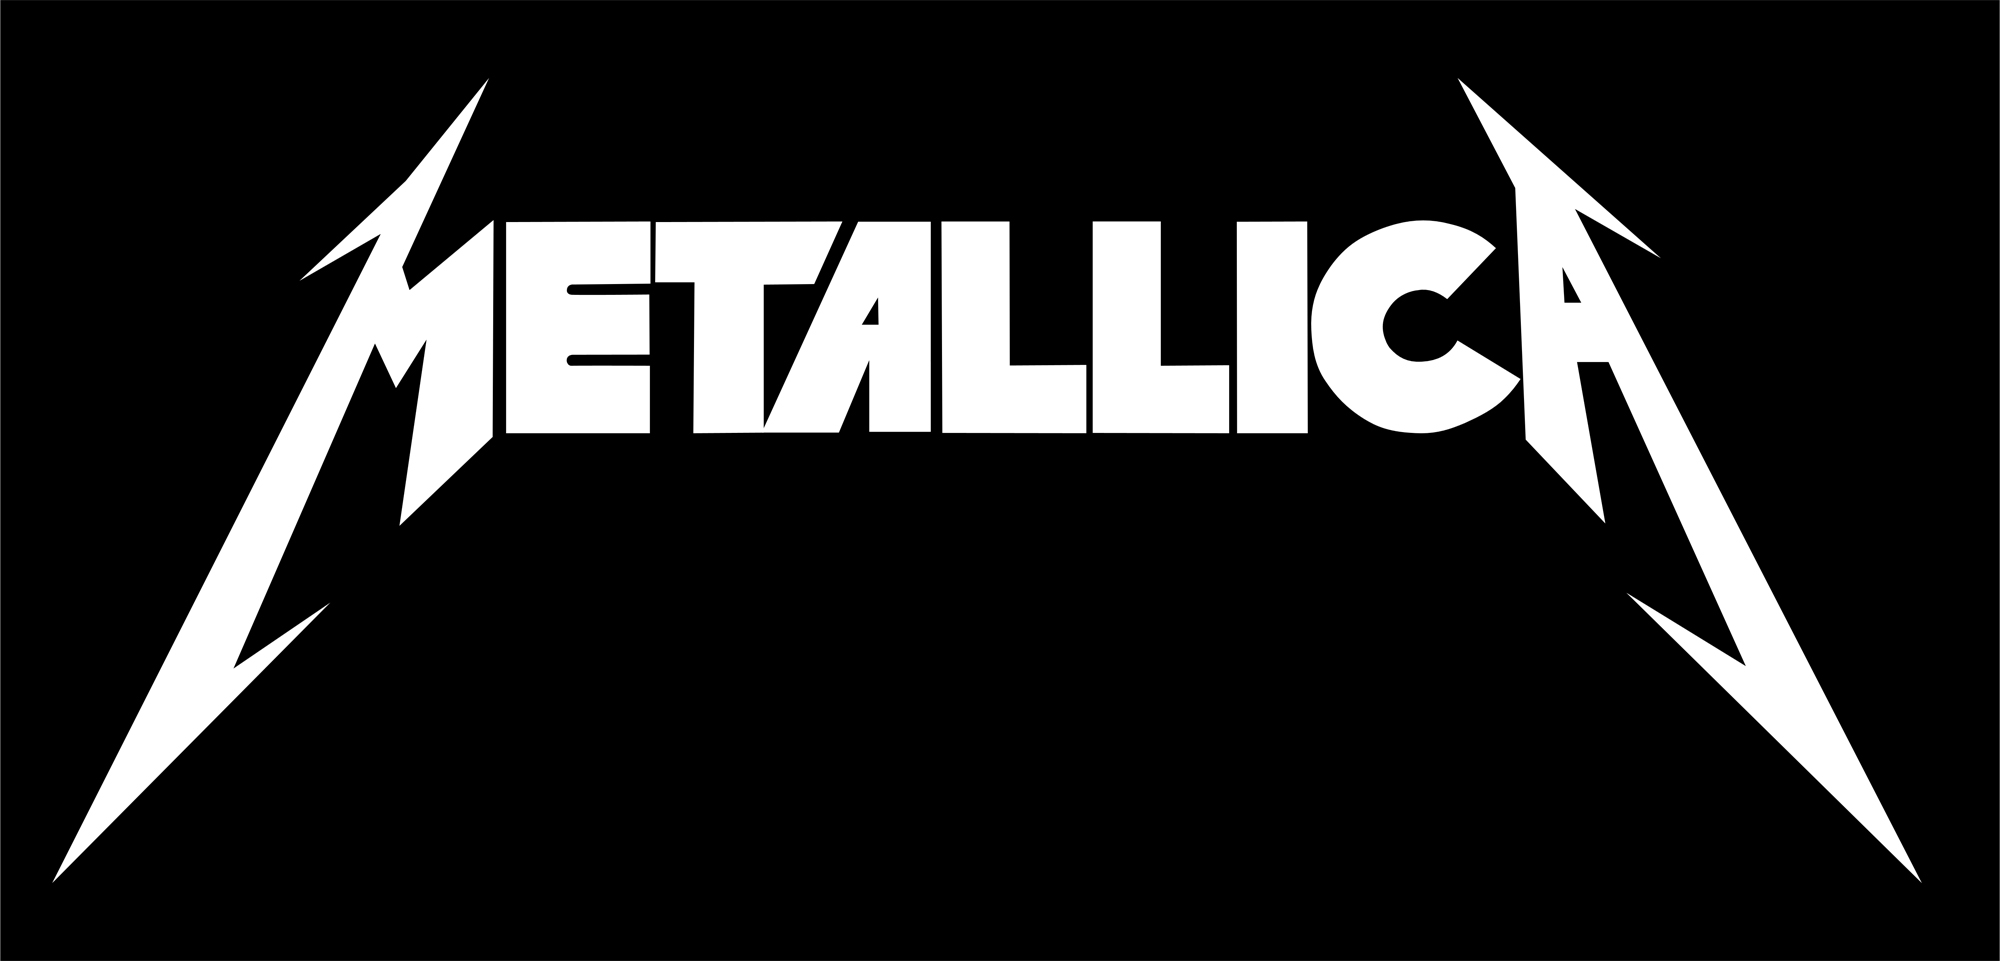 List of Metallica concert tours